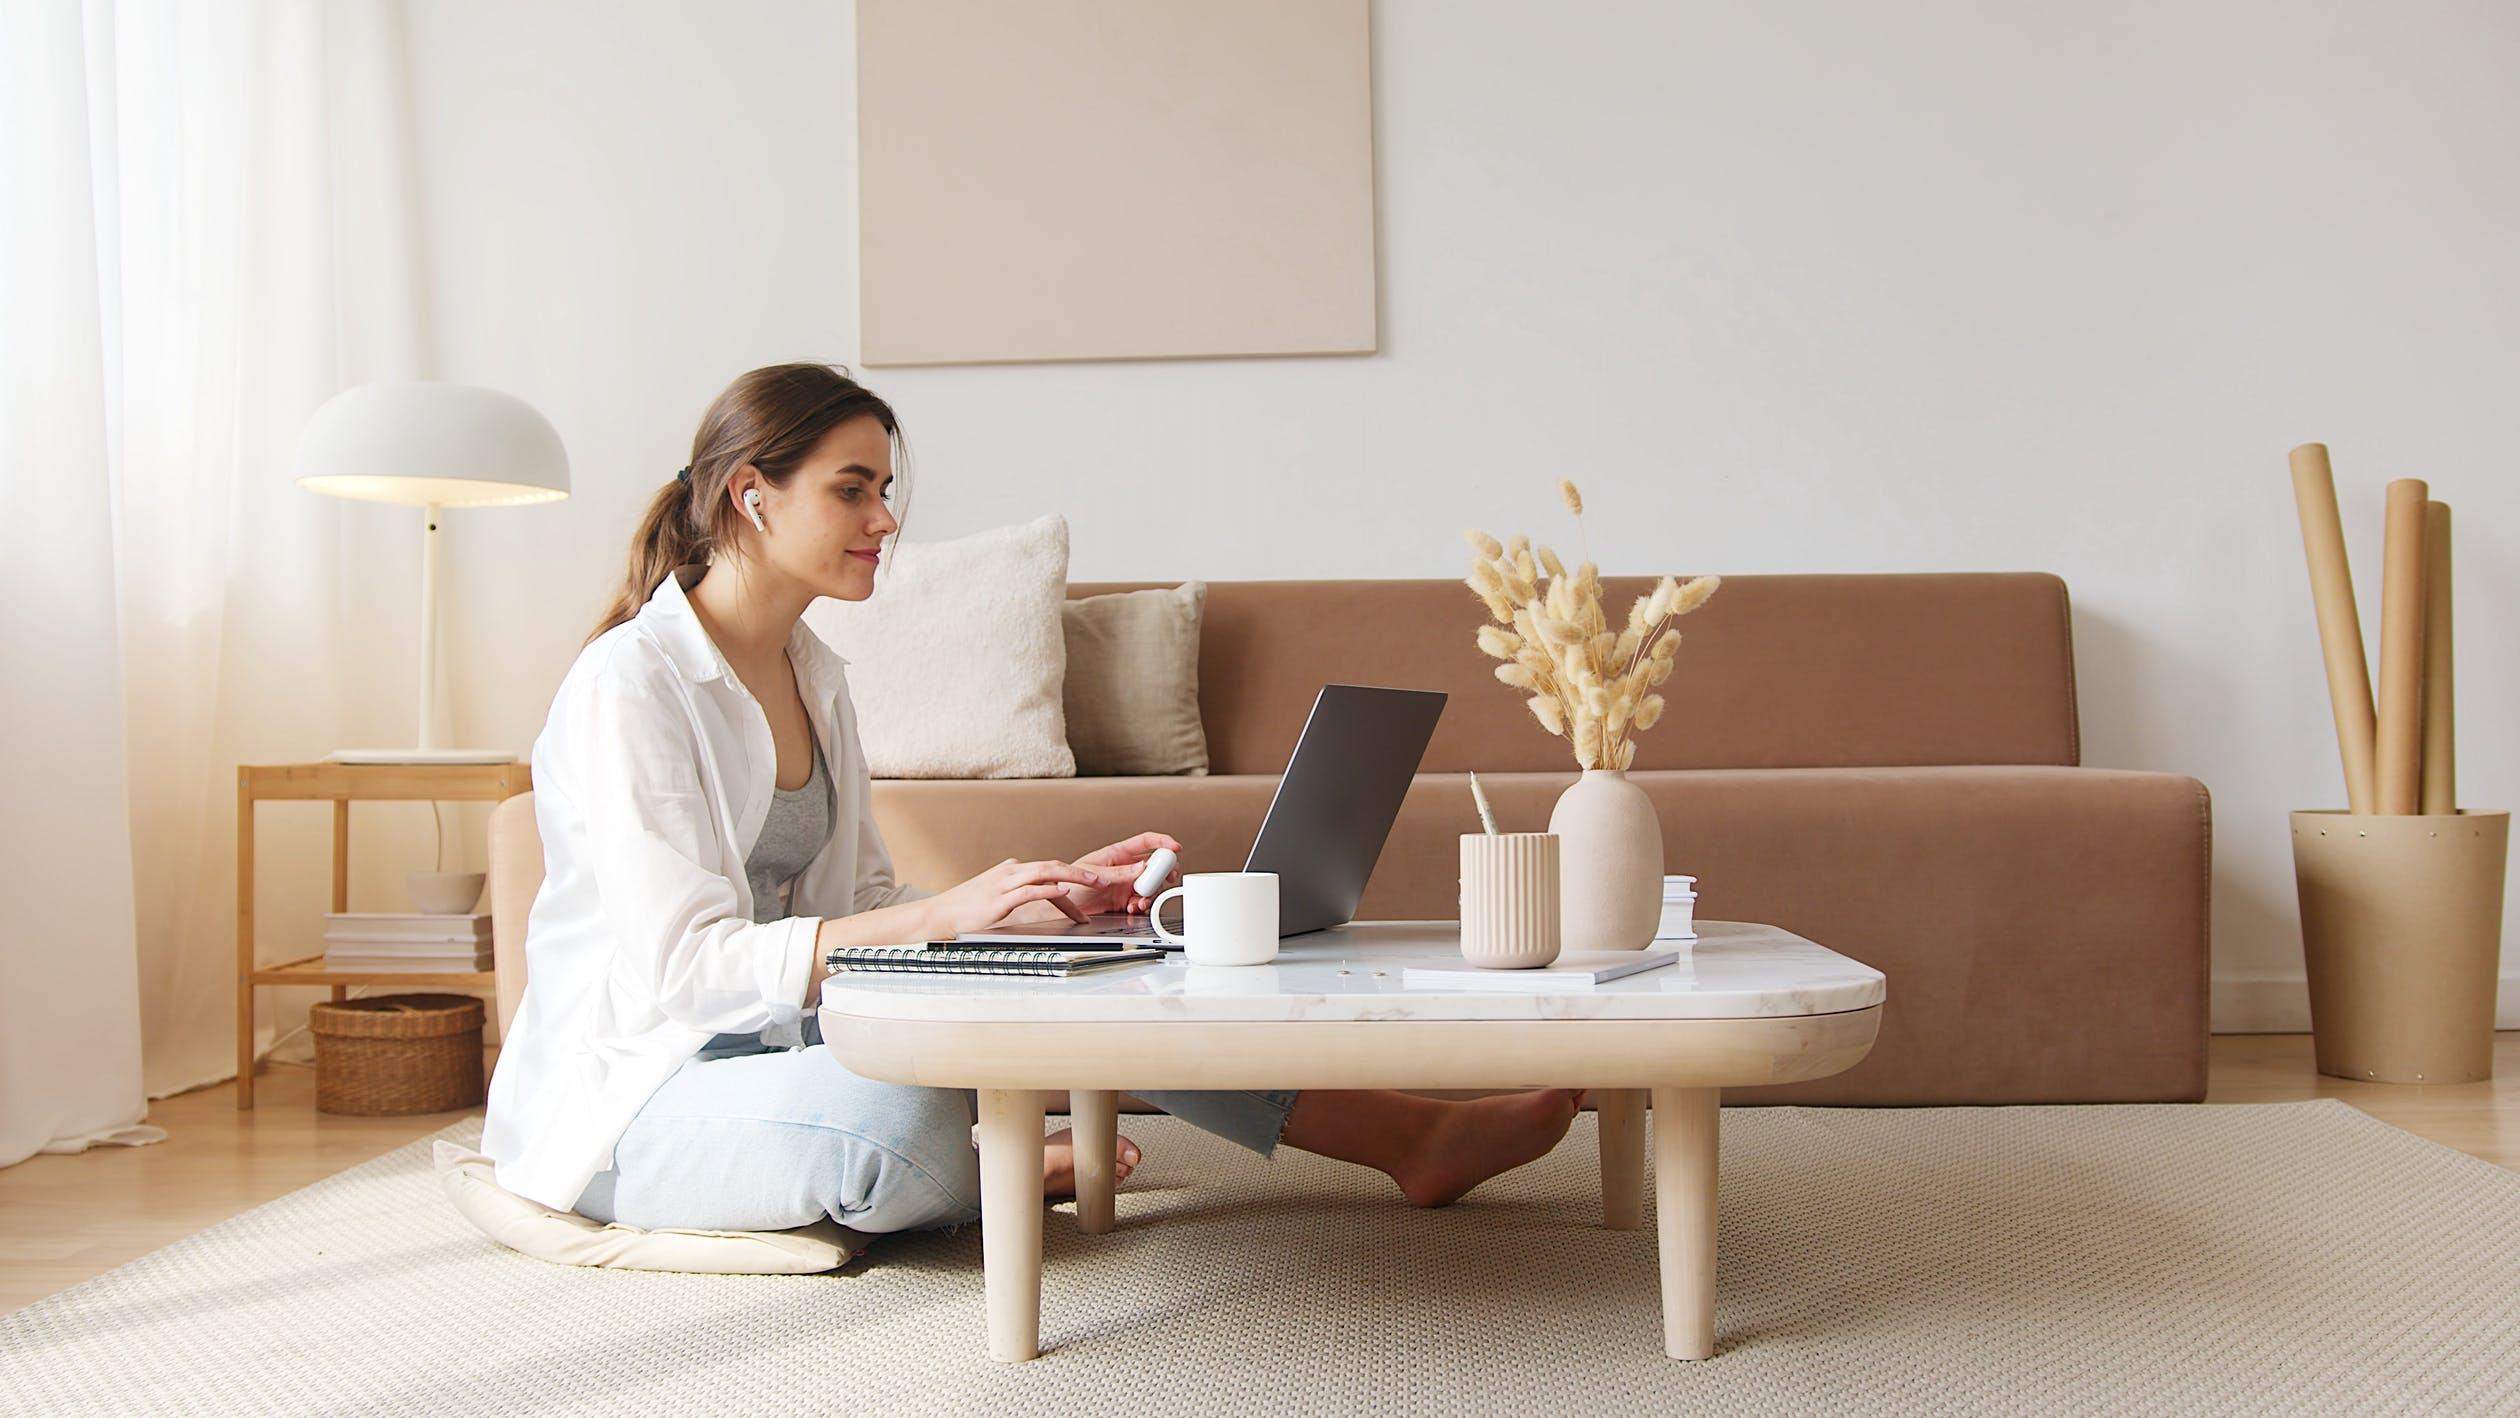 The Unexpected Upside of Remote Work